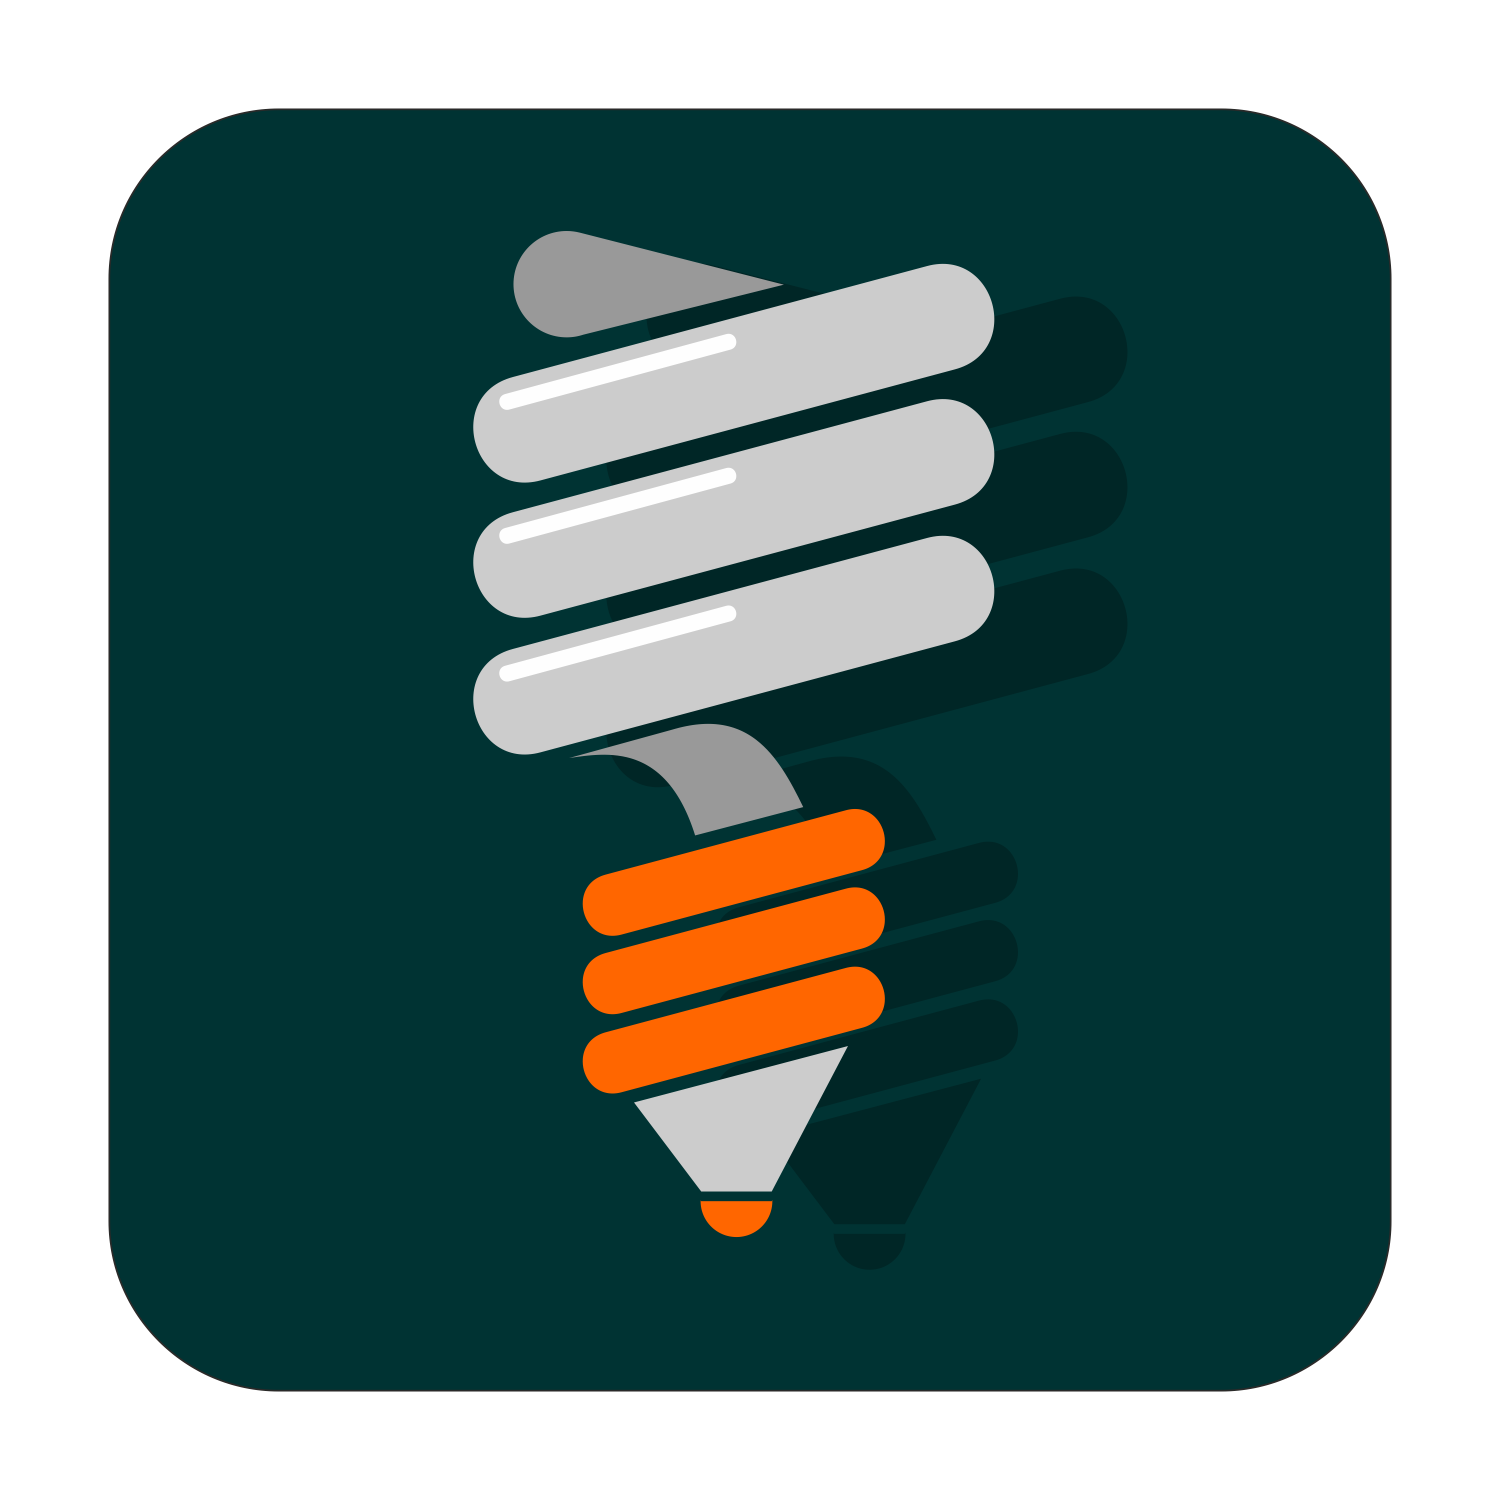 Energy saving lamp icon in vector